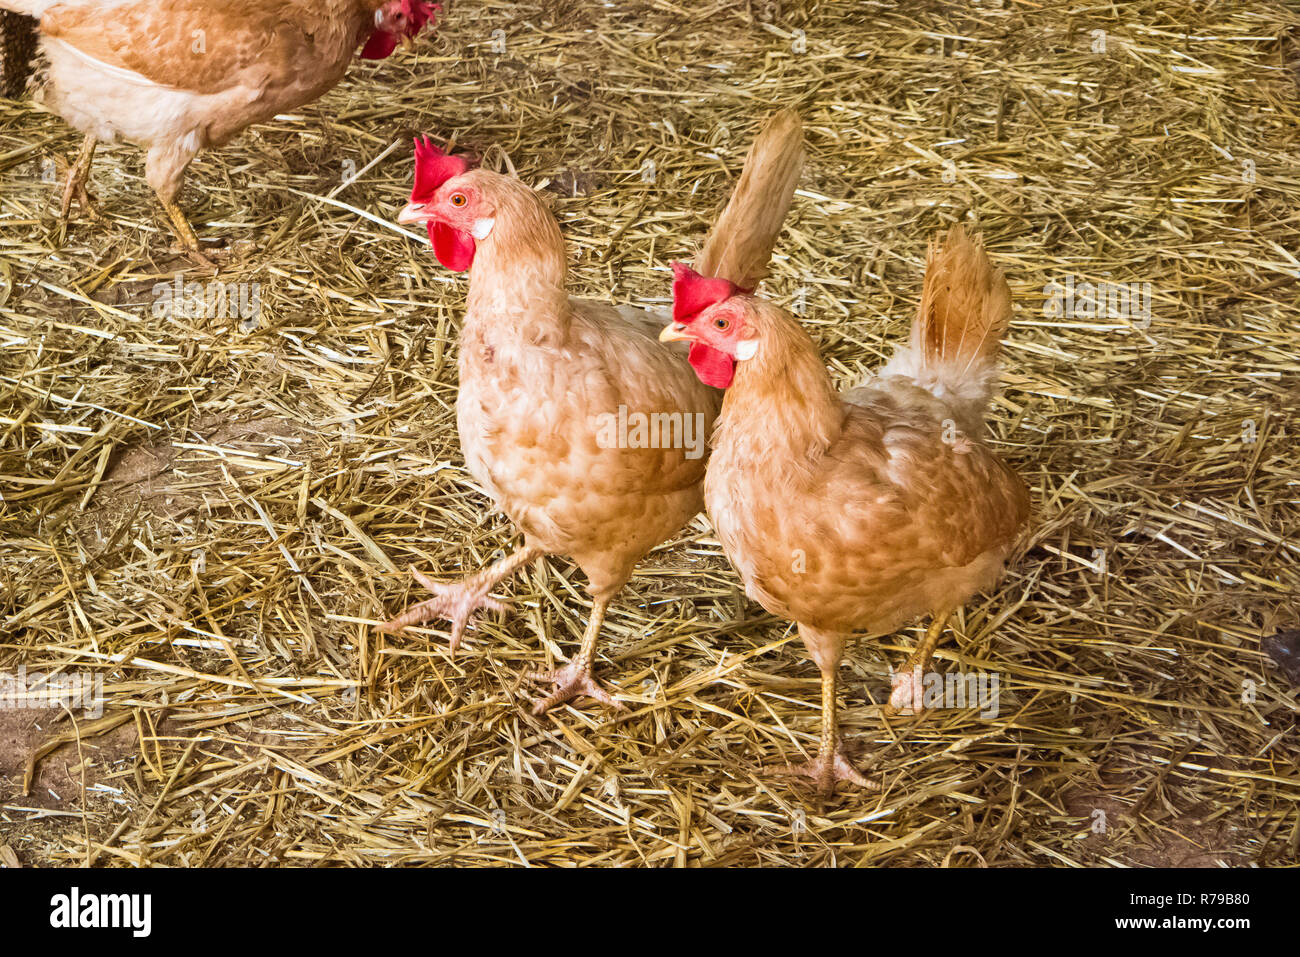 hens outdoor that eating worms of the land. - Stock Image